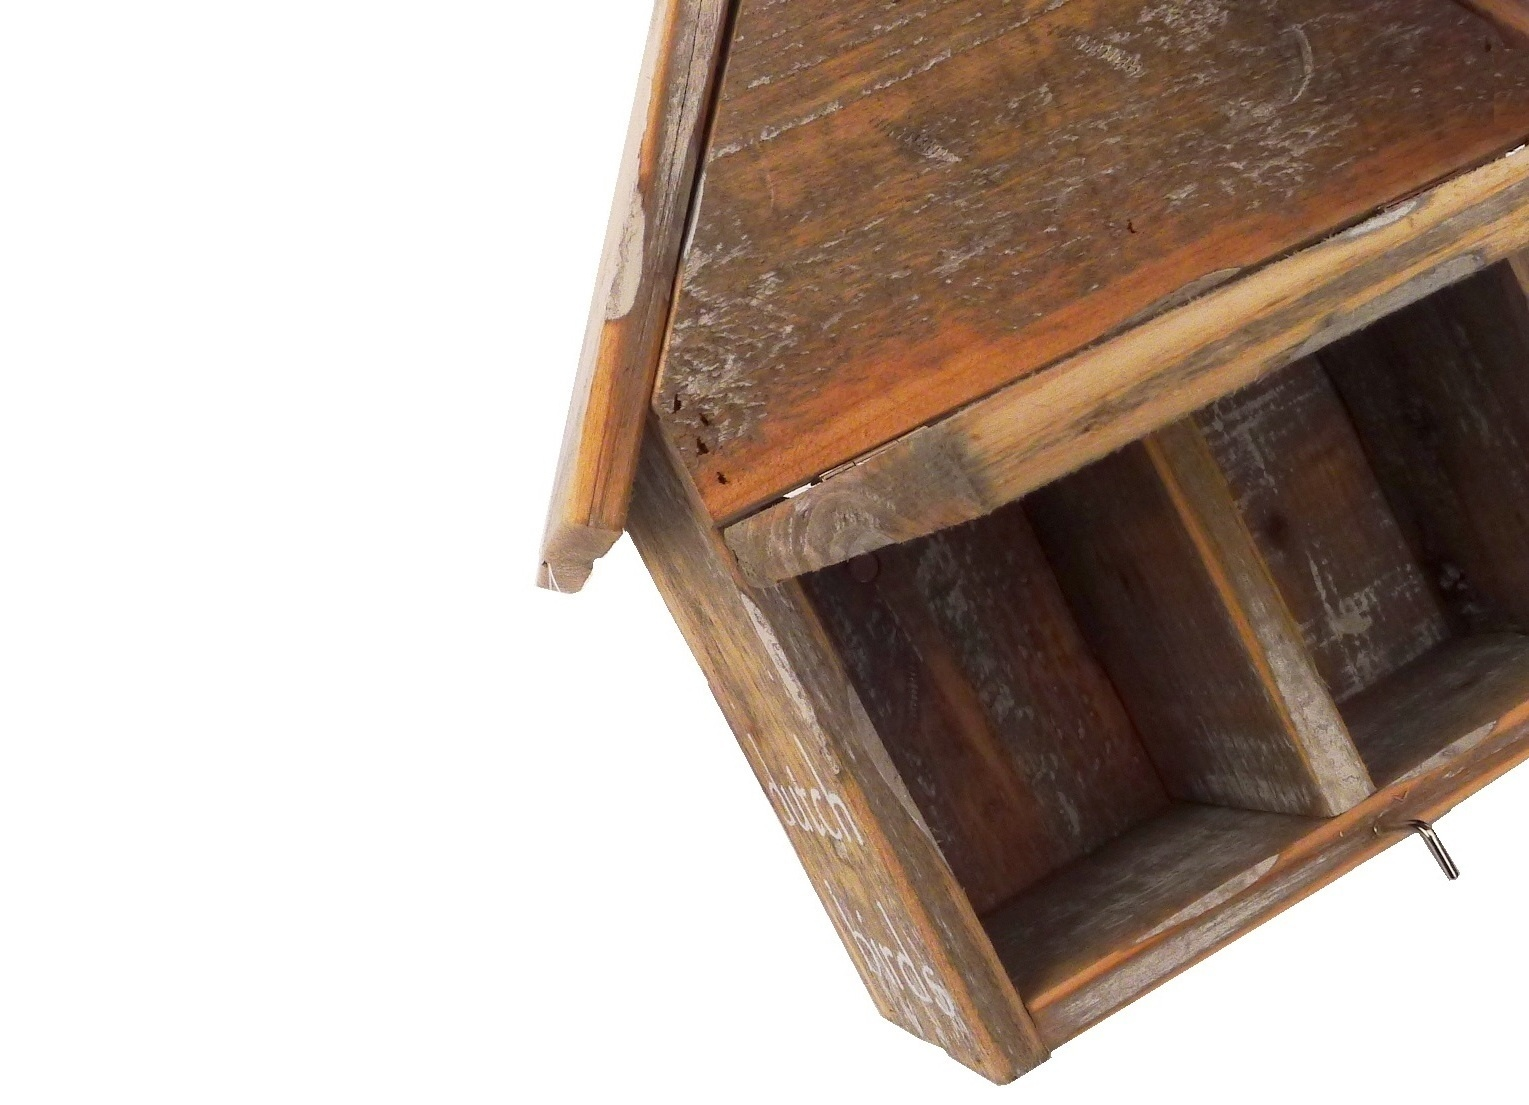 birdhouse old dutch 2 under 1 roof-5